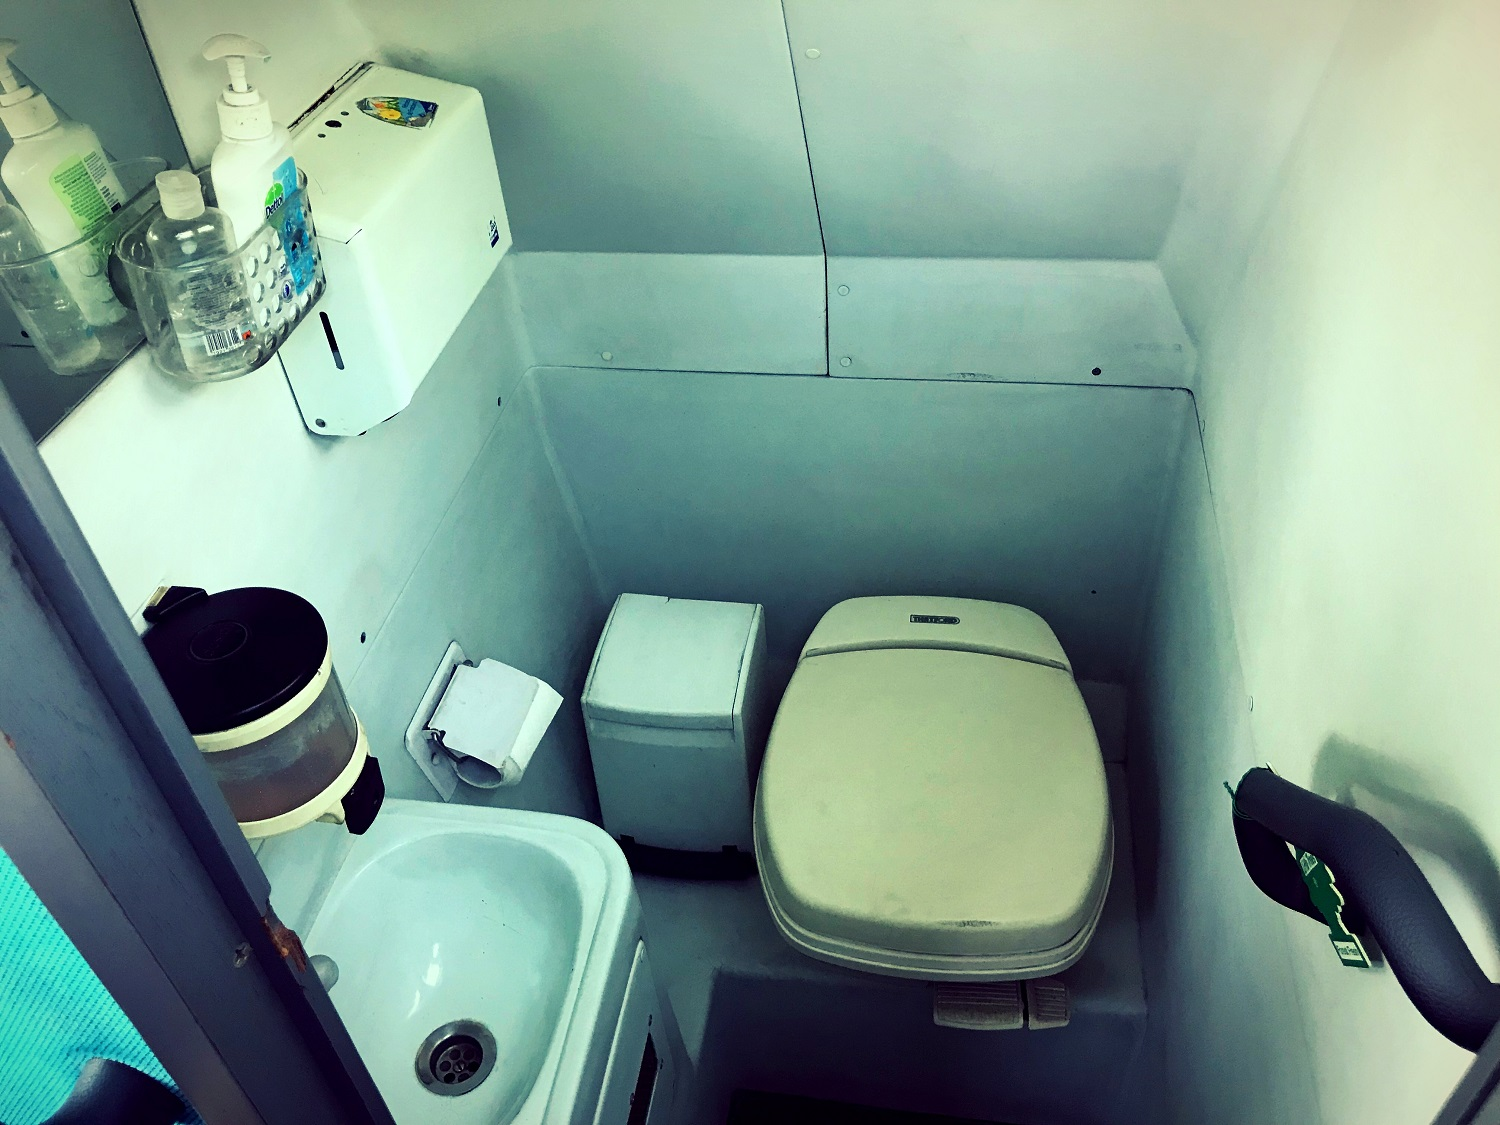 A view of the toilet in Advanced Travel's 49 seater Scania Irizar coach, which is available for coach hire in Rotherham. There is a small cubicle with a hand rail leading into it. There is a toilet, toilet roll dispenser, sink, soap dispenser and hand towel dispenser. There is also a waste paper bin and some additional soaps and cleaning products. There is a small mirror above the sink.